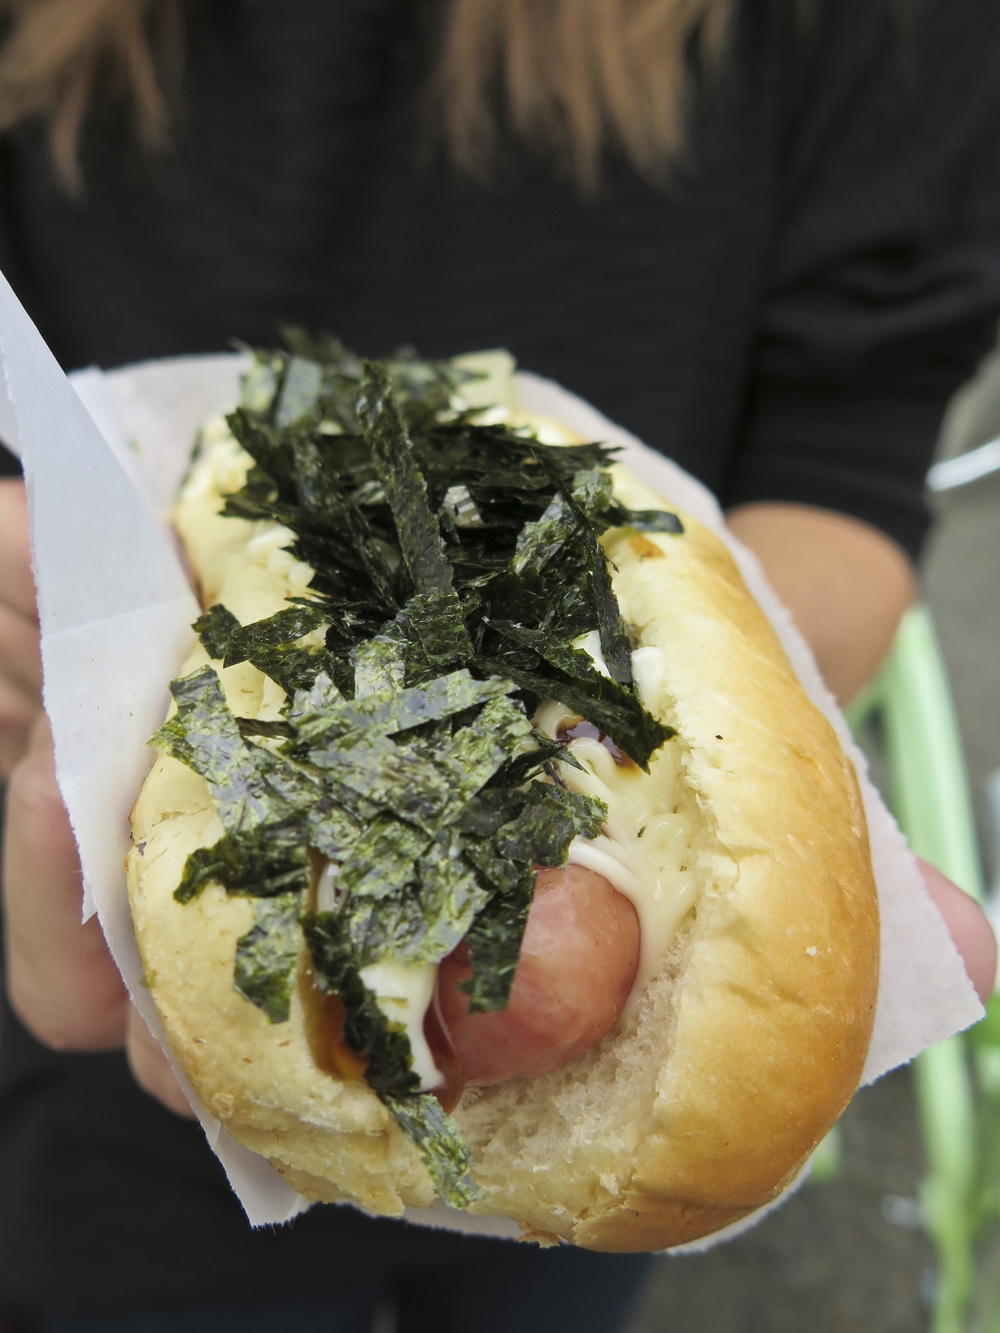 Terimayo dog topped with seaweed.